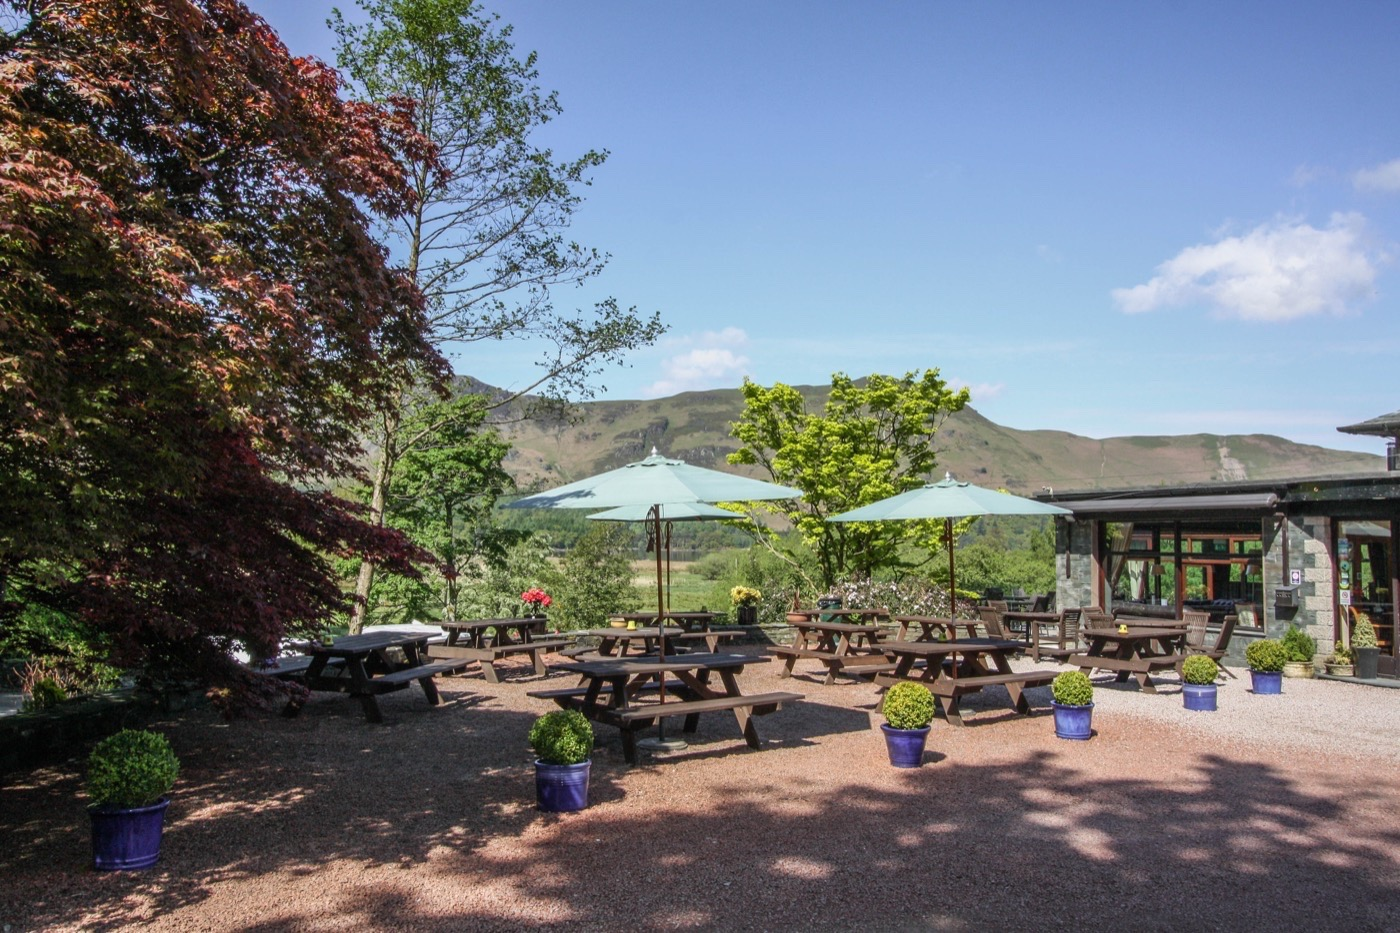 mary-mount-hotel-accommodation-derwentwater-lake-district-43_1400px.jpg